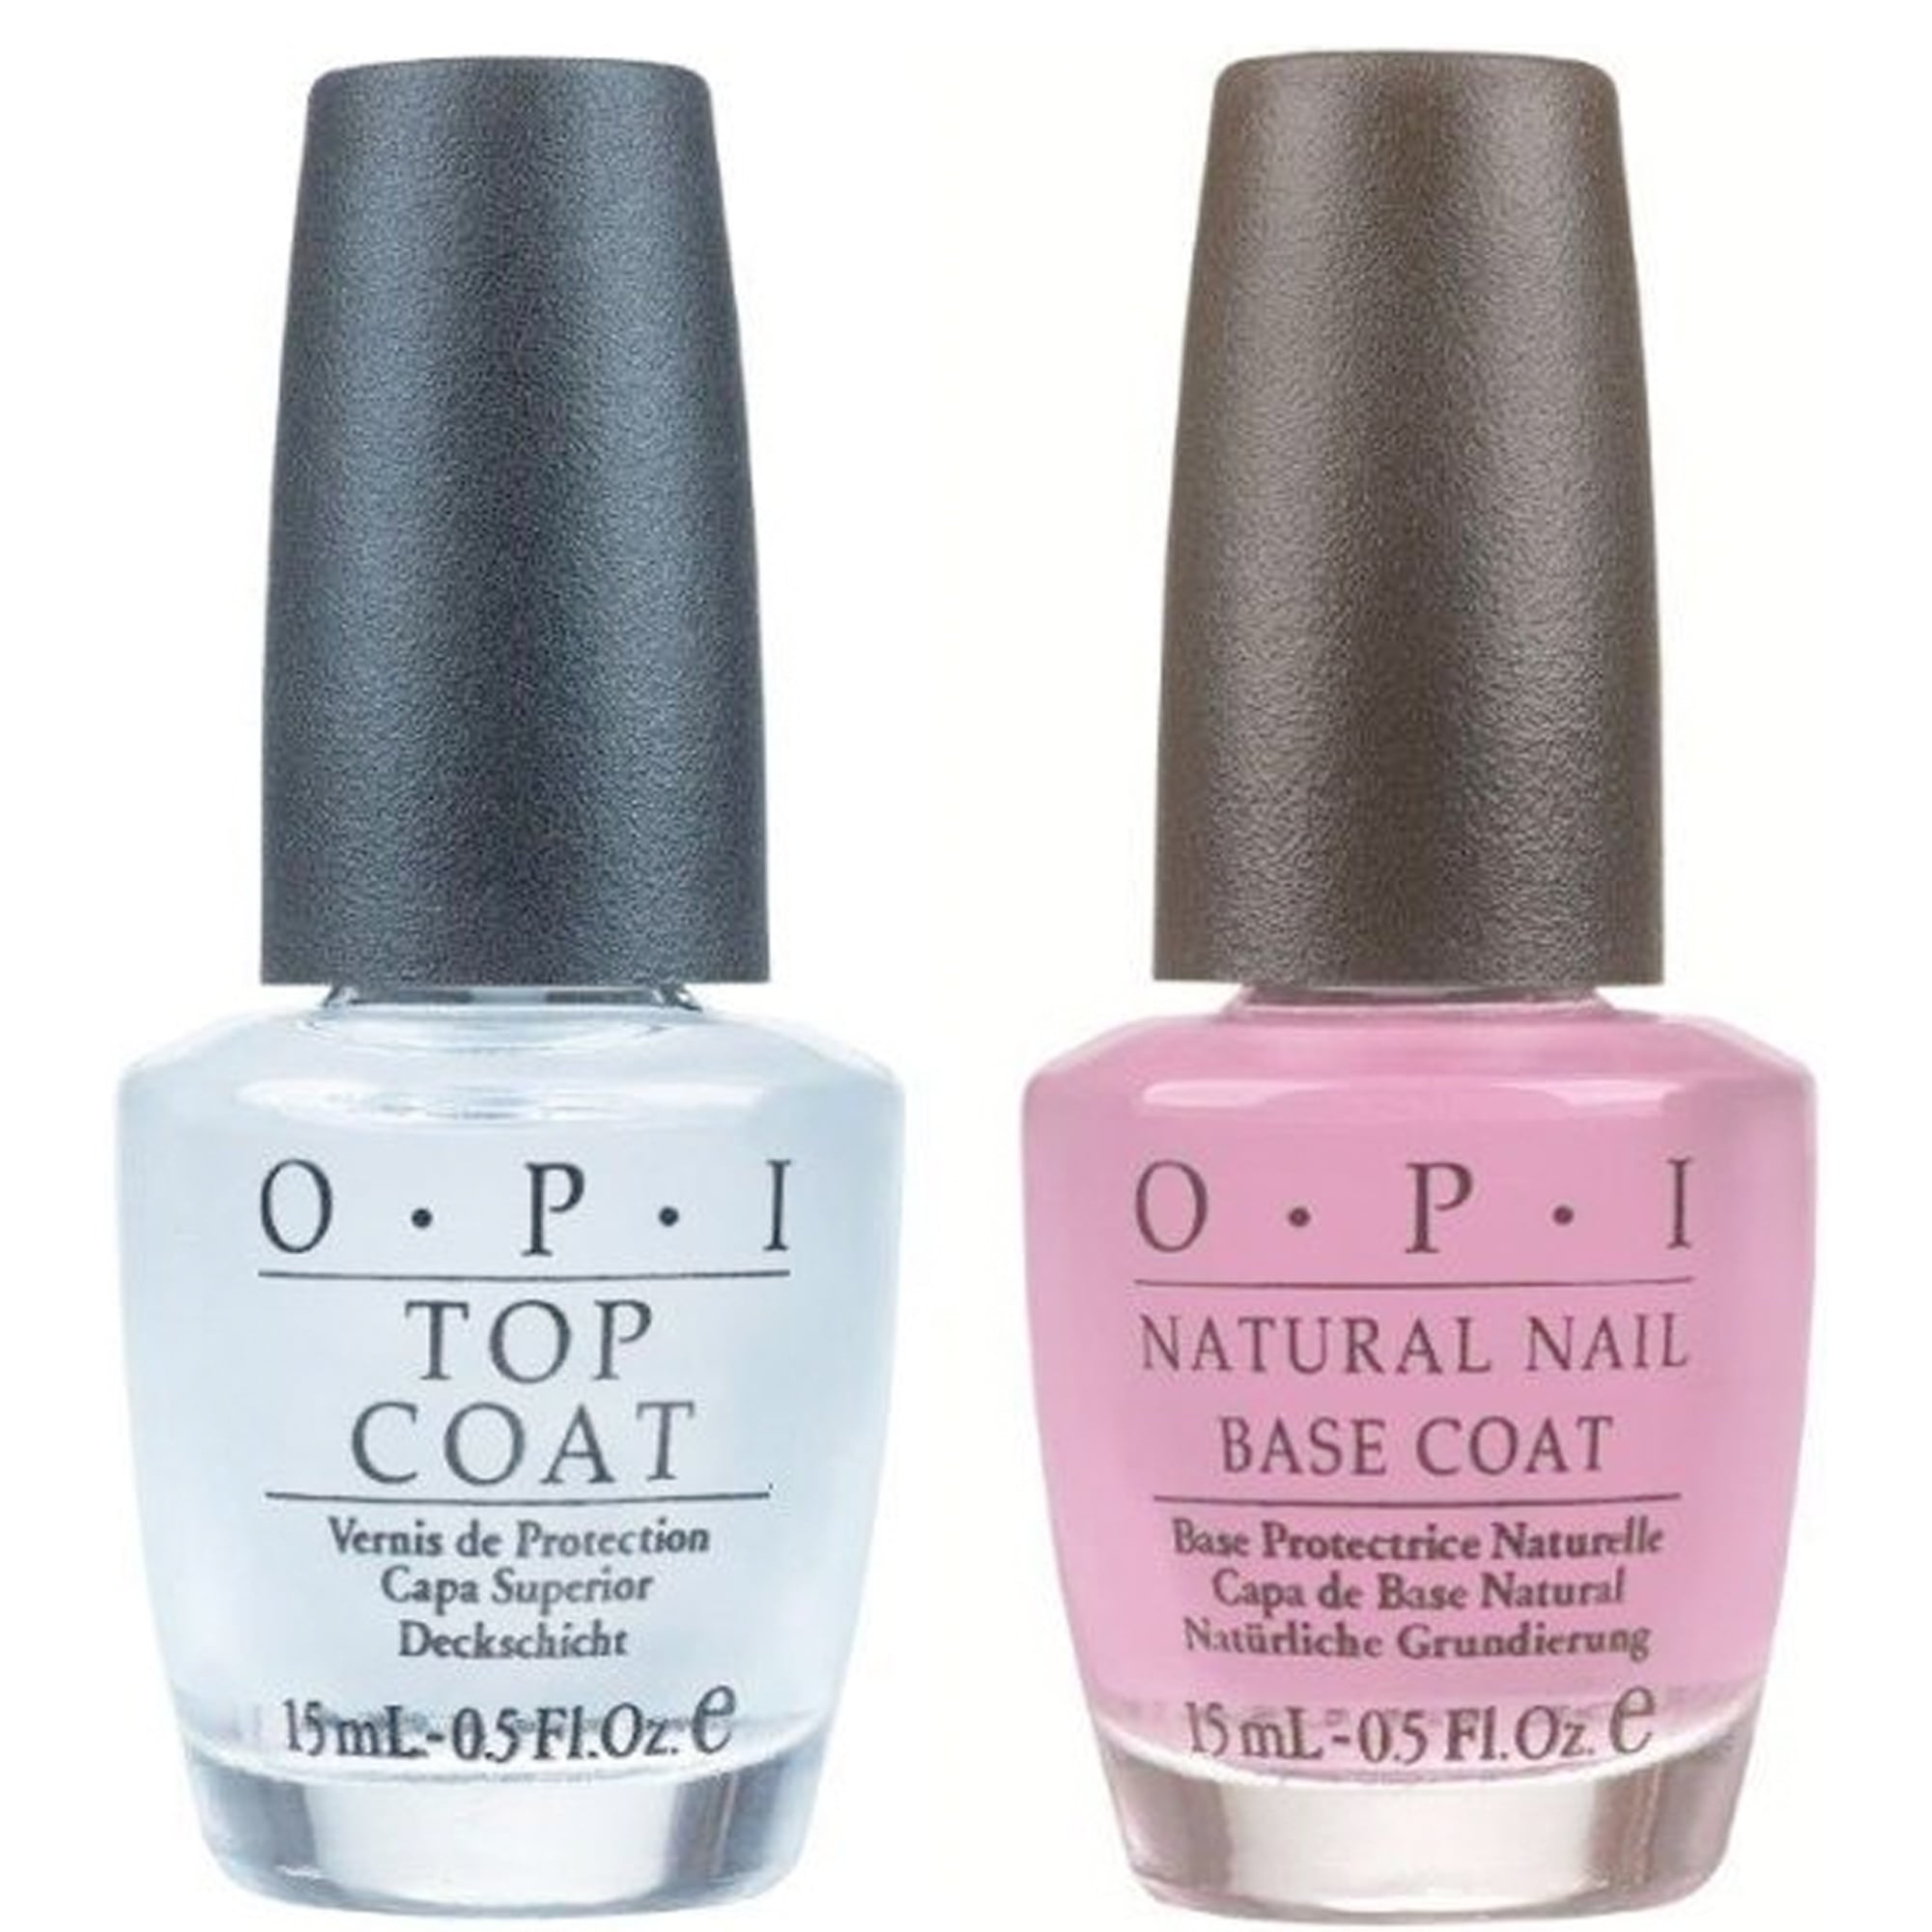 OPI Nail Polish Duo - Natural Nail Top Coat & Basecoat x2 15ml